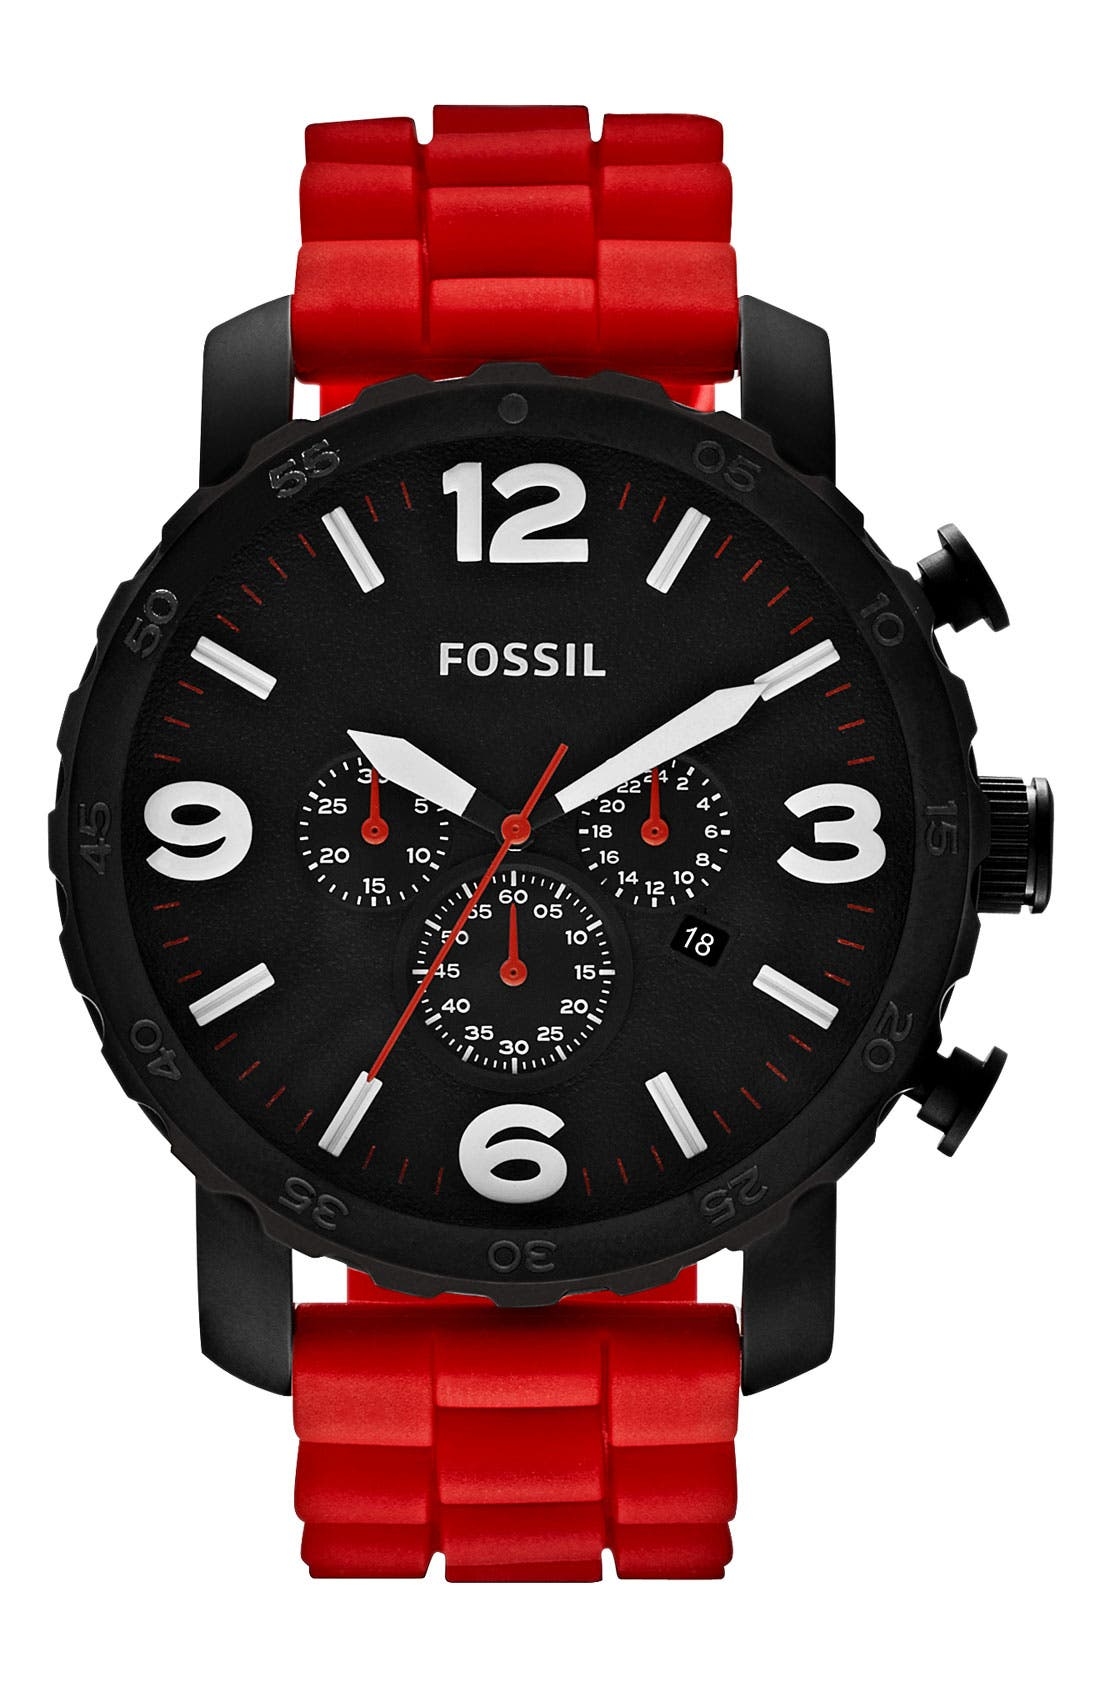 Main Image - Fossil 'Gage' Chronograph Silicone Strap Watch, 50mm